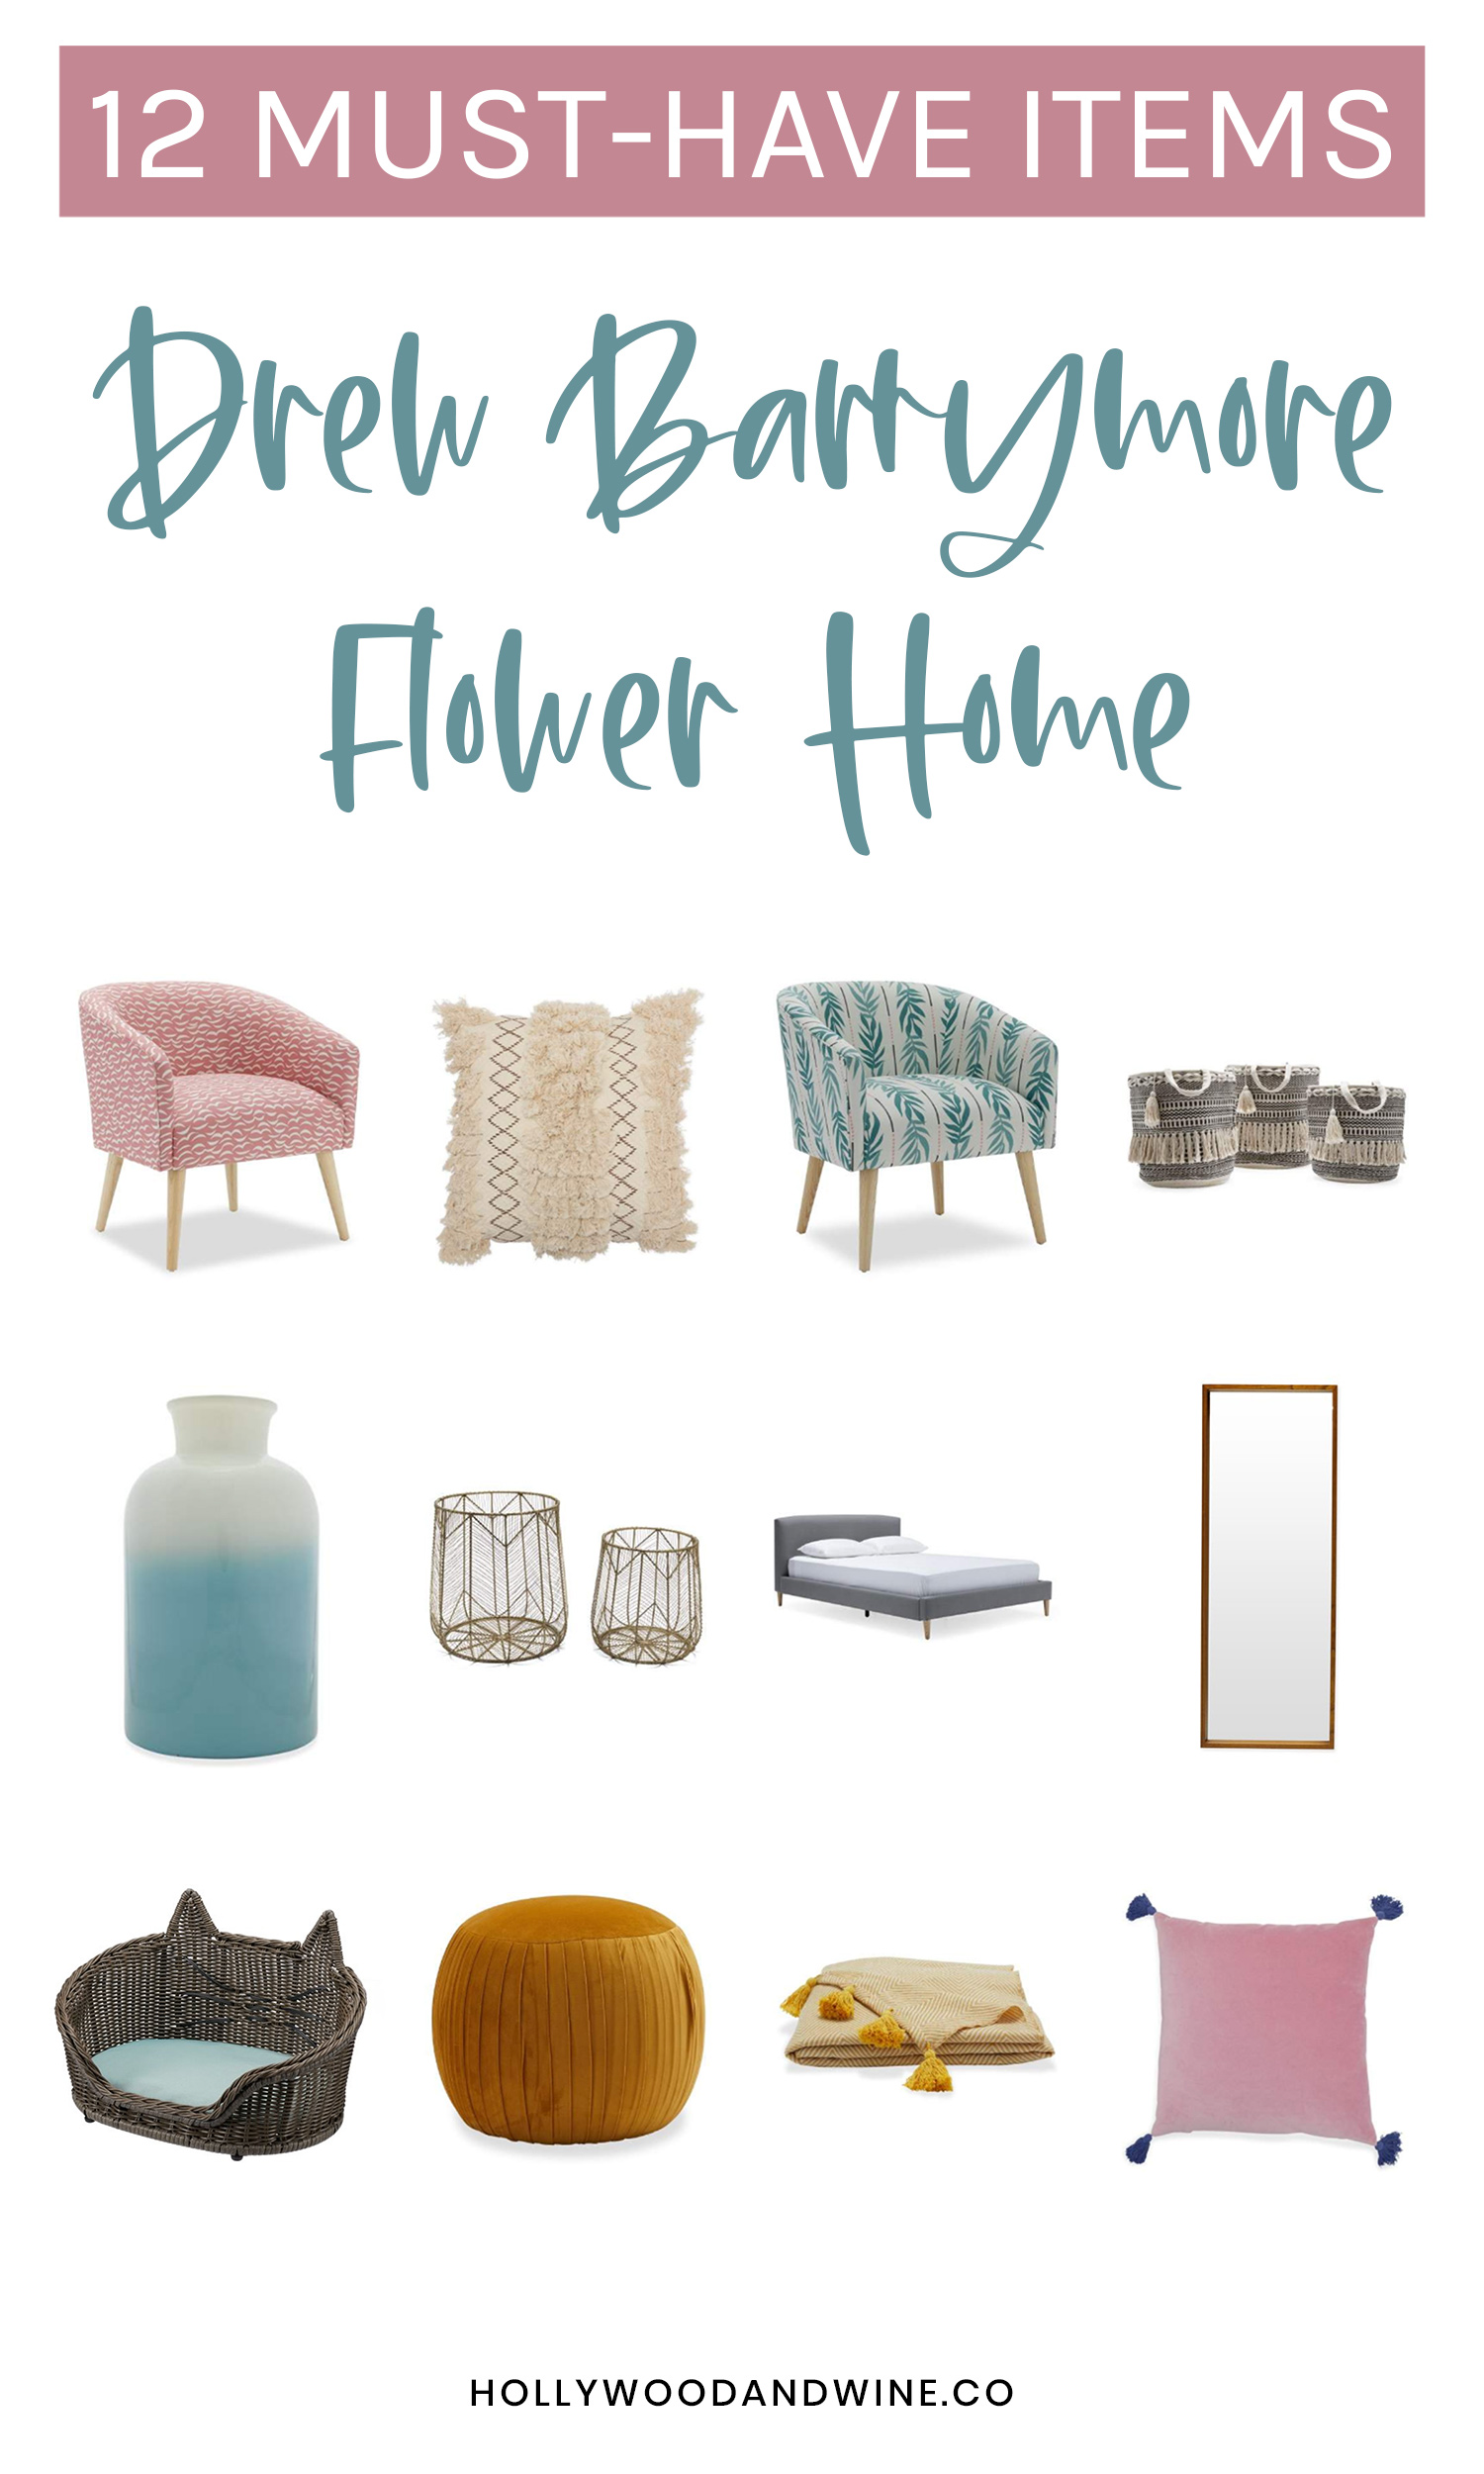 12 must-have items from the Drew Barrymore Flower Home Collection at Walmart